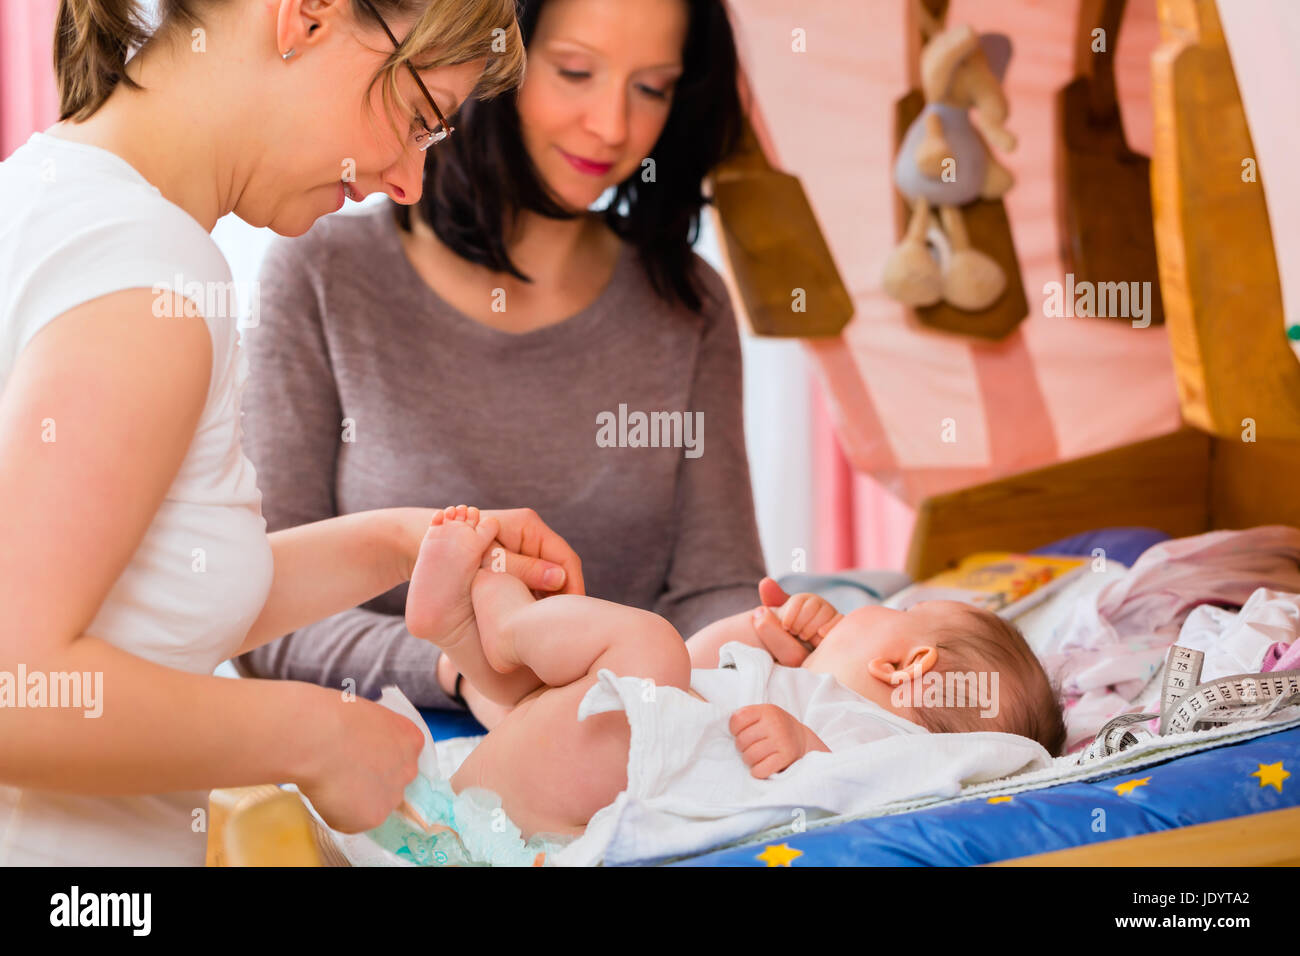 Midwife examining newborn baby at postnatal care in practice - Stock Image